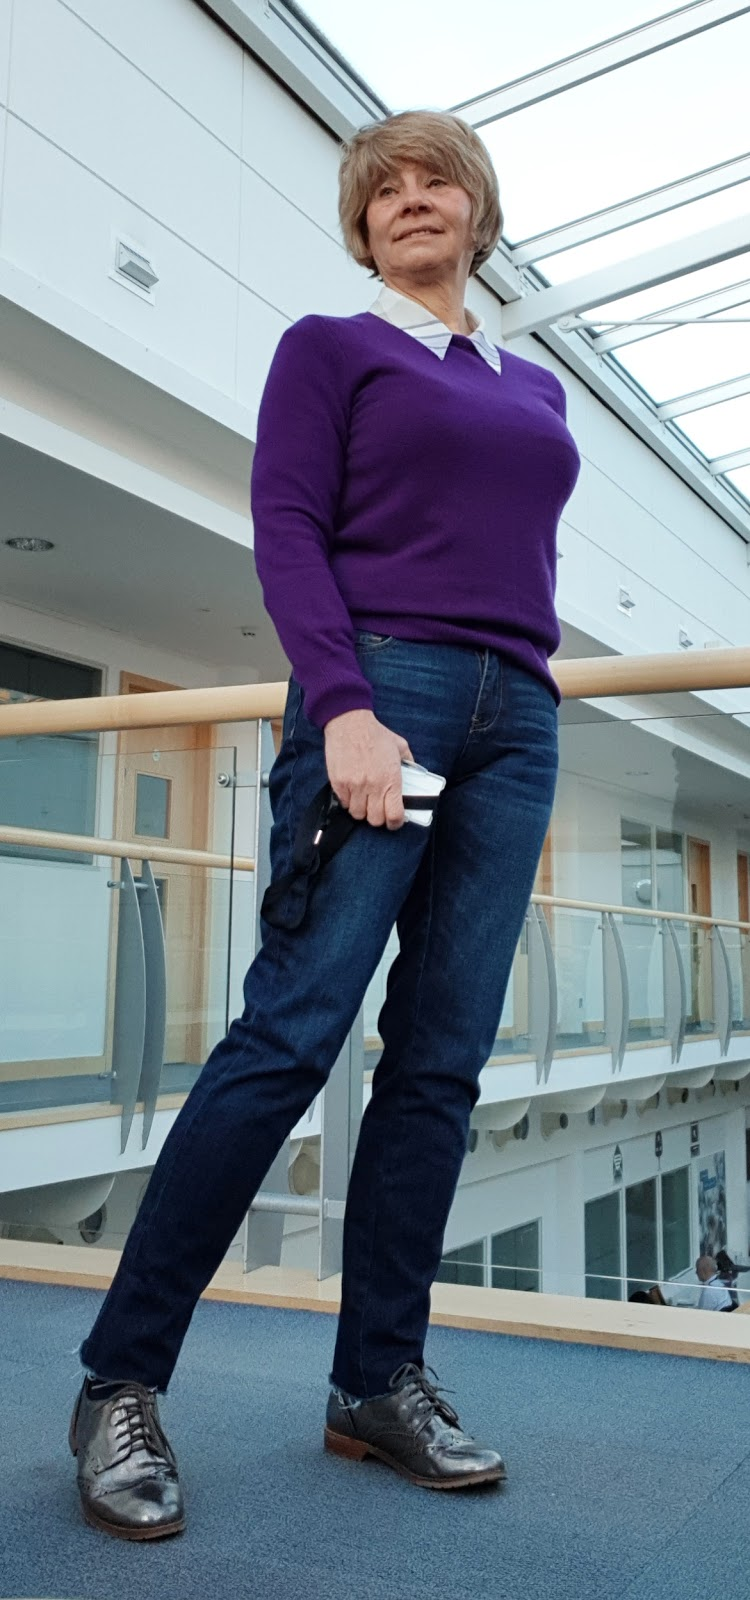 Image showing Is This Mutton? blogger Gail Hanlon in a casual outfit for dress down Friday: jeans, metallic brogues, purple cashmere jumper.